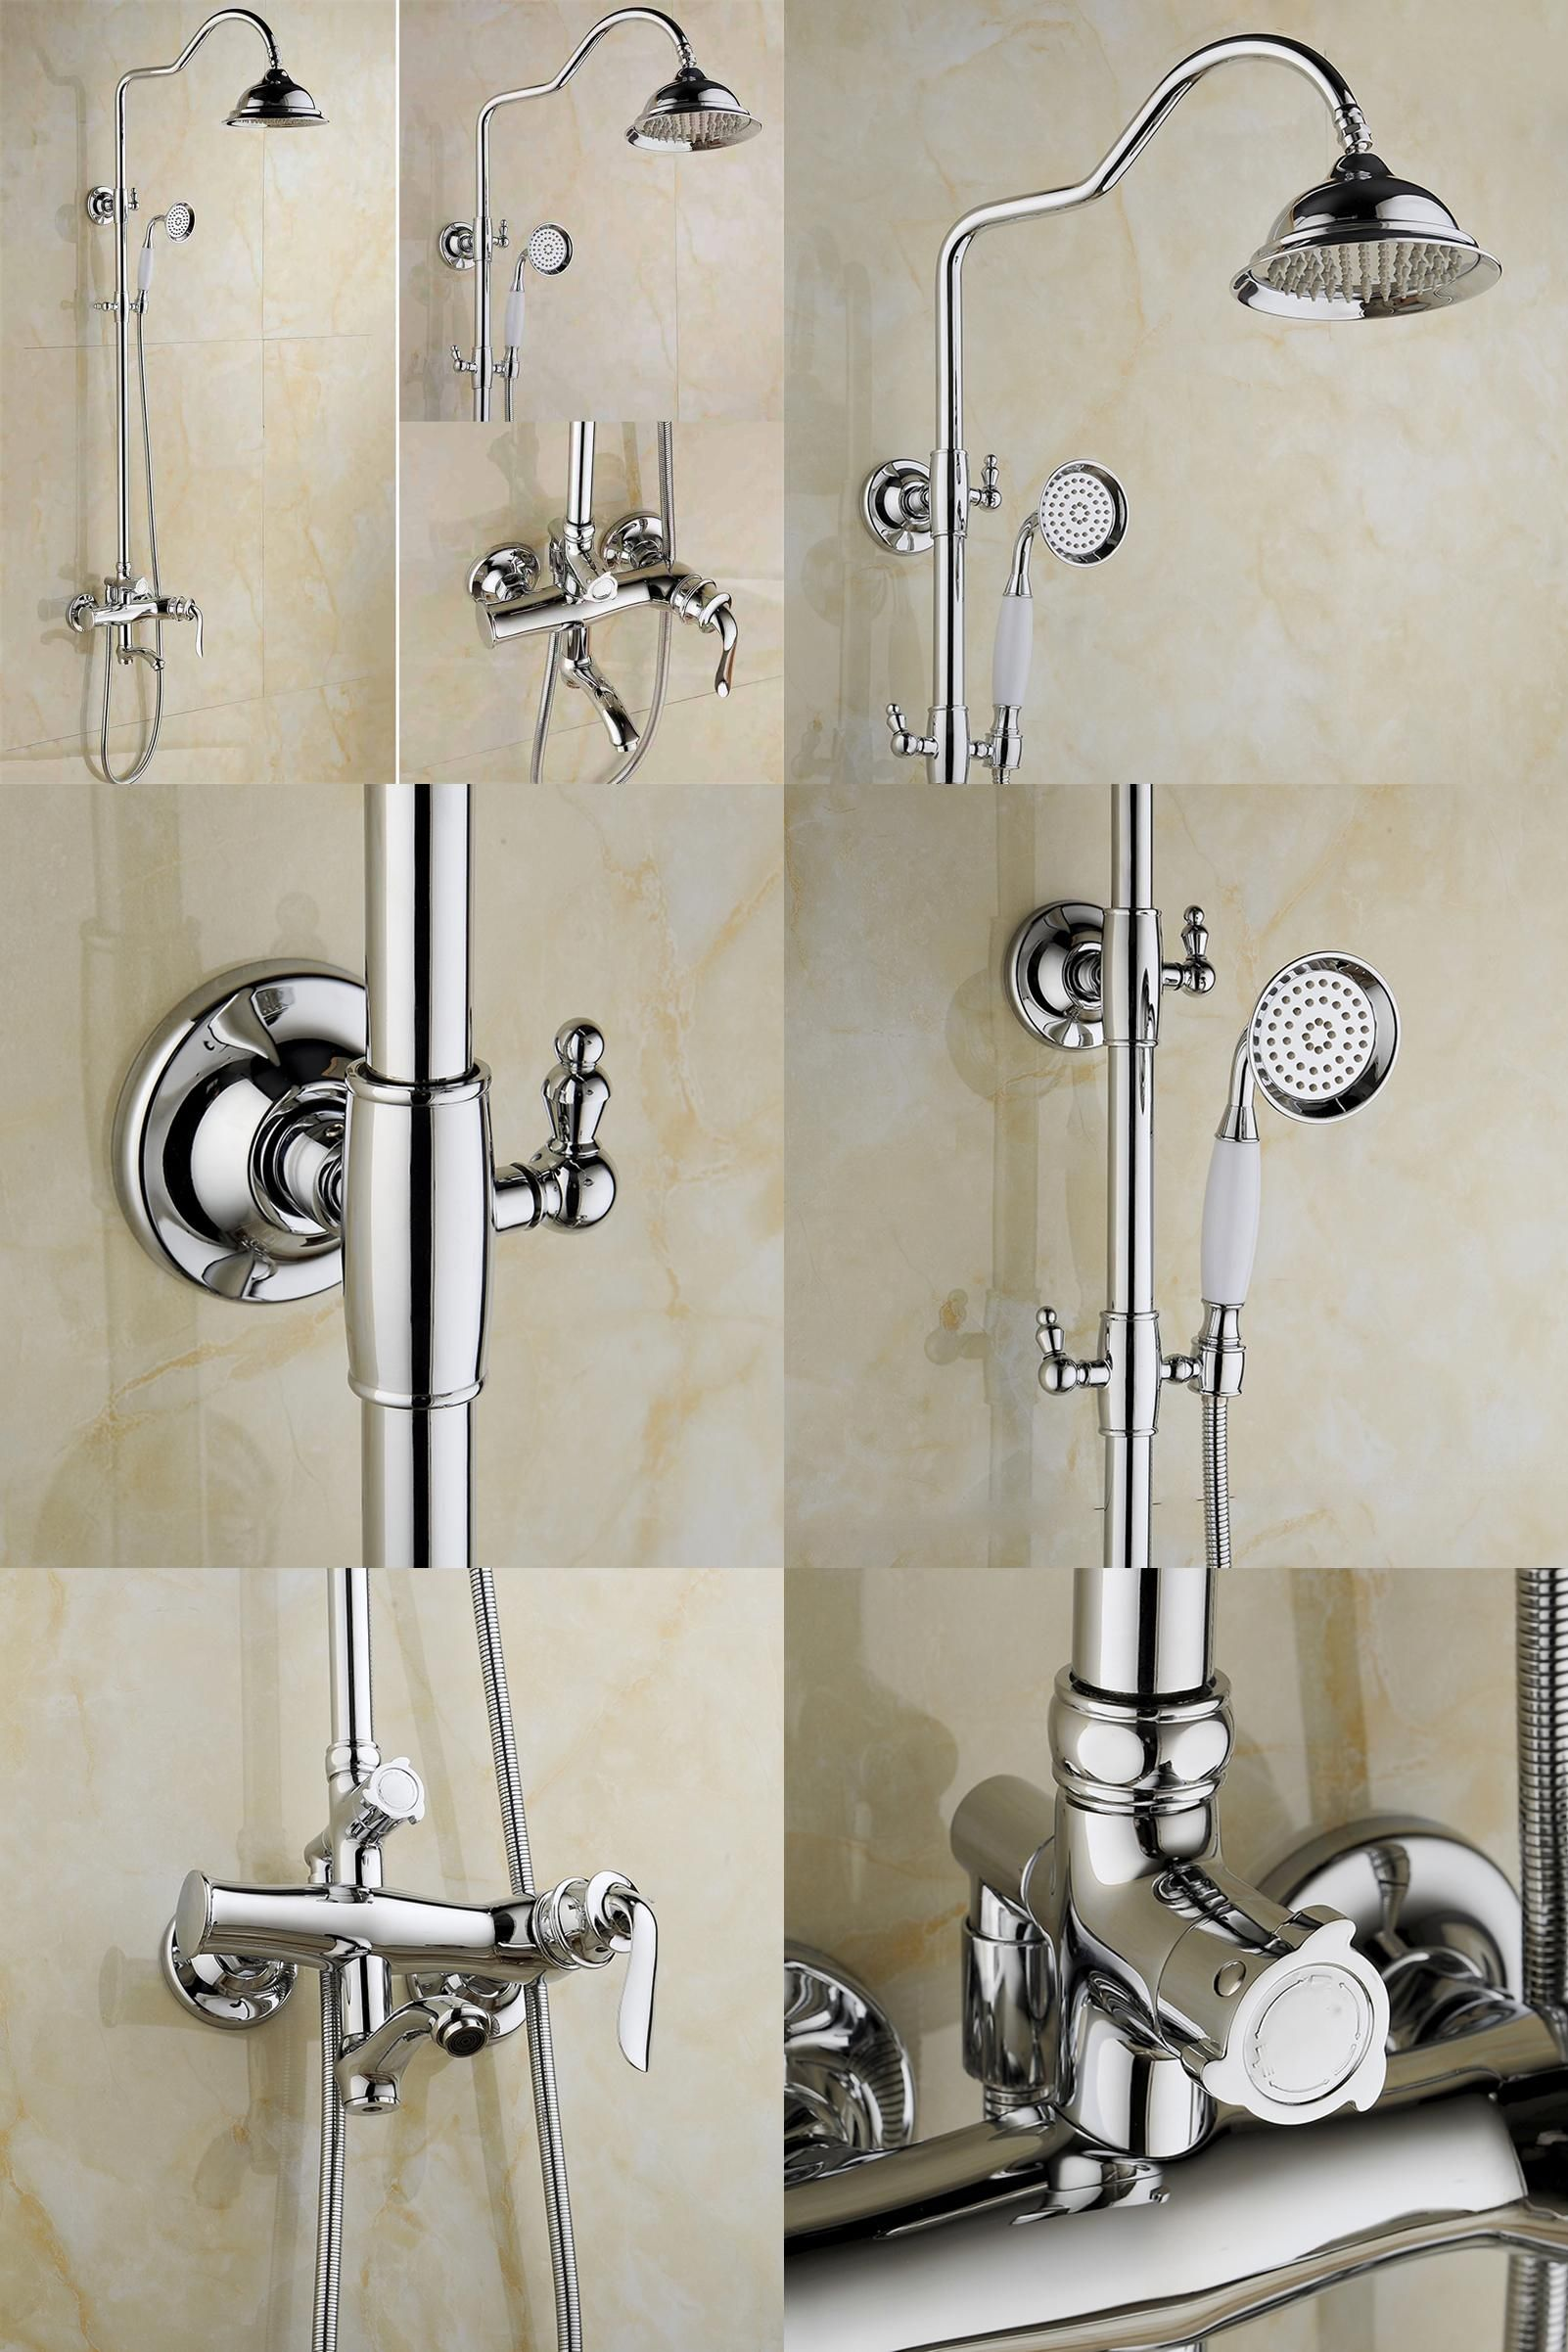 Visit to Buy] FLG Bathroom Shower Set, Brass Chrome Shower Faucet 8 ...